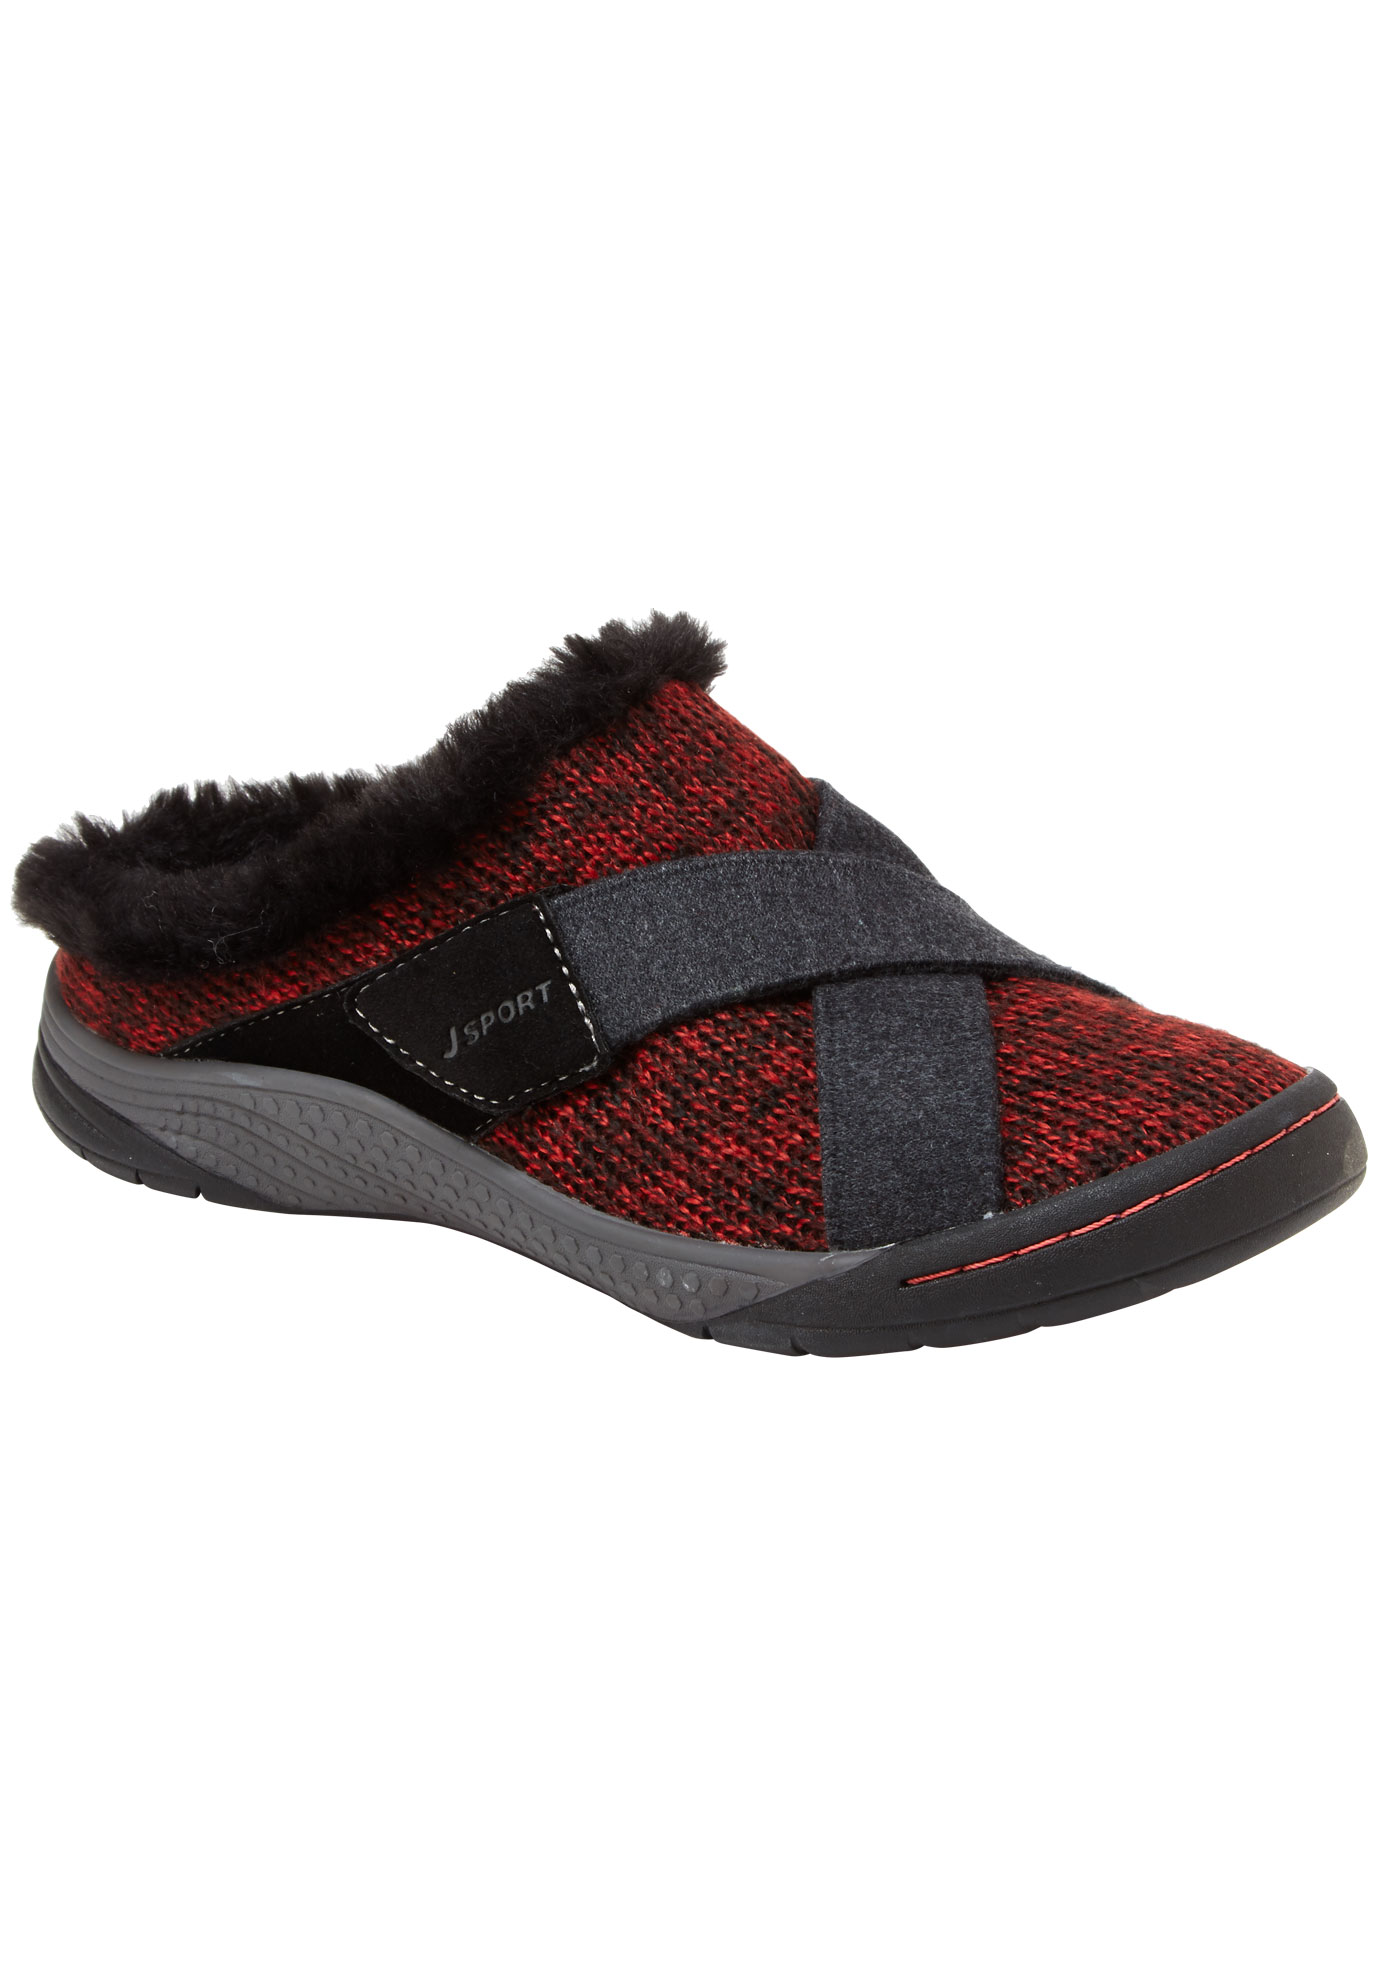 Graham Flats by JBU®, RED